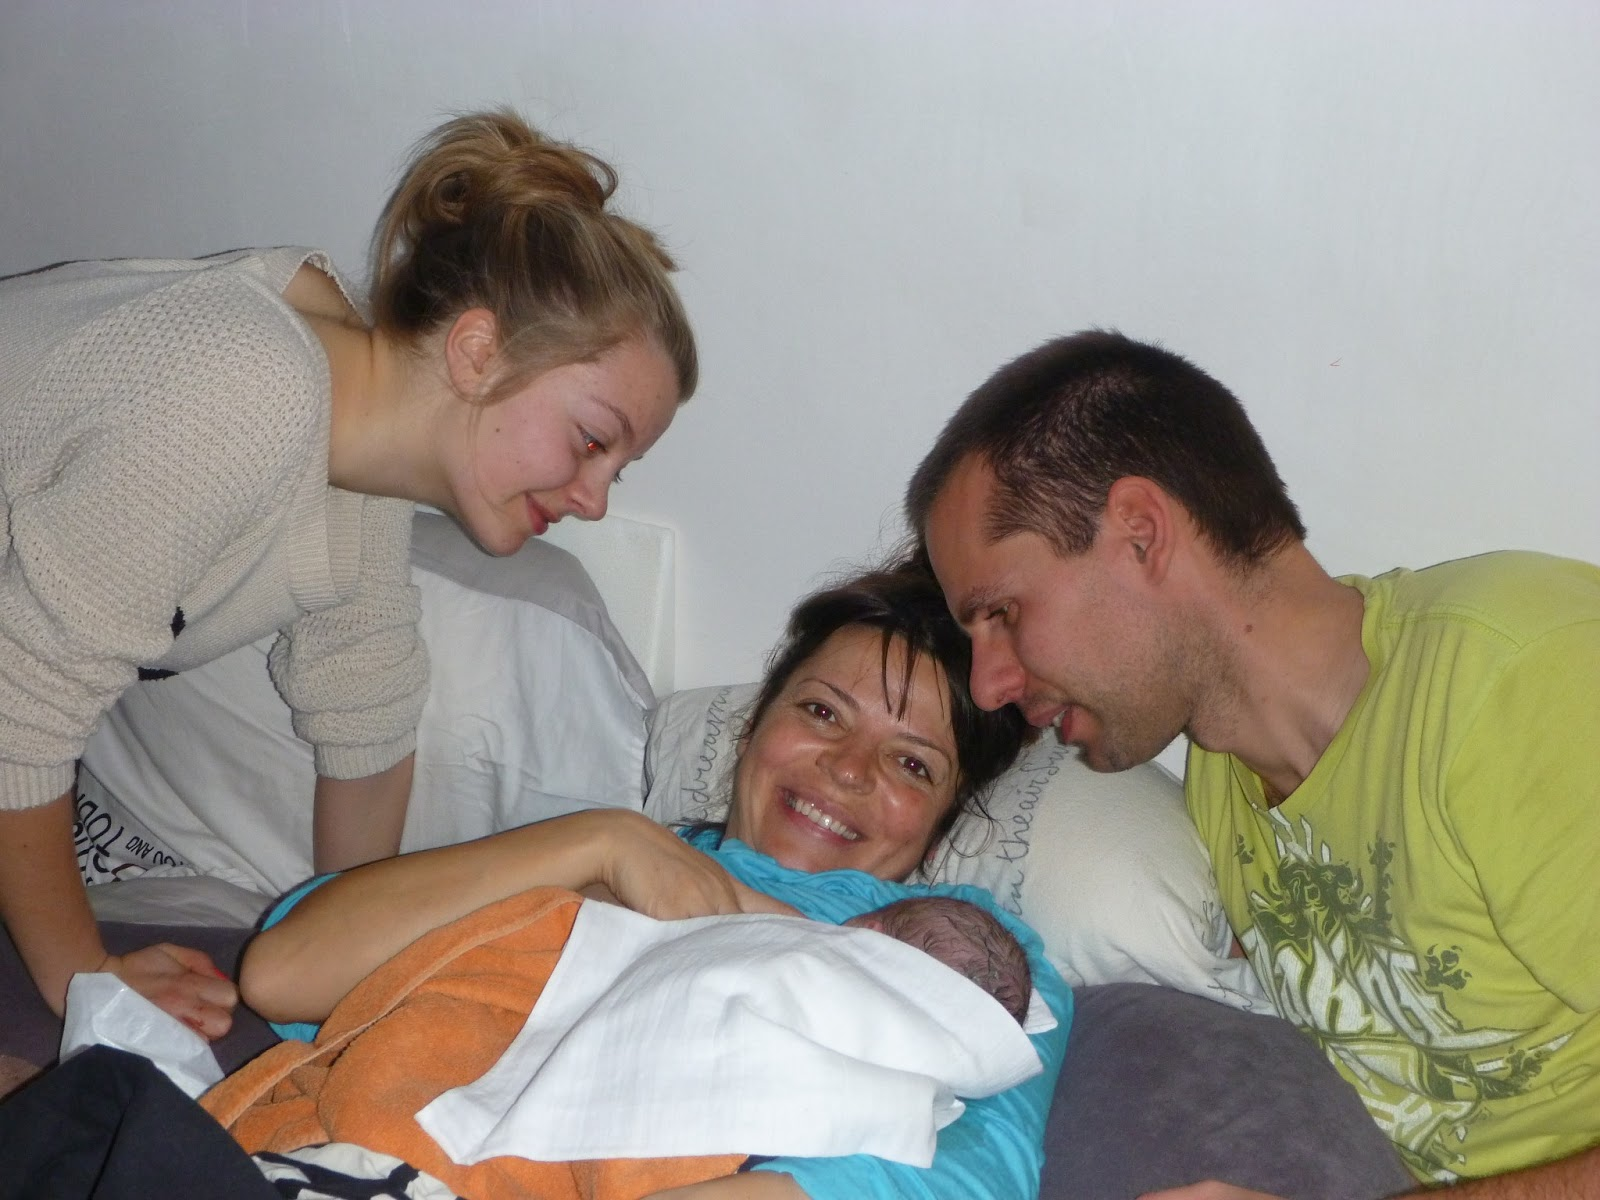 Ecstatic, orgasmic and unassisted home birth: The ...